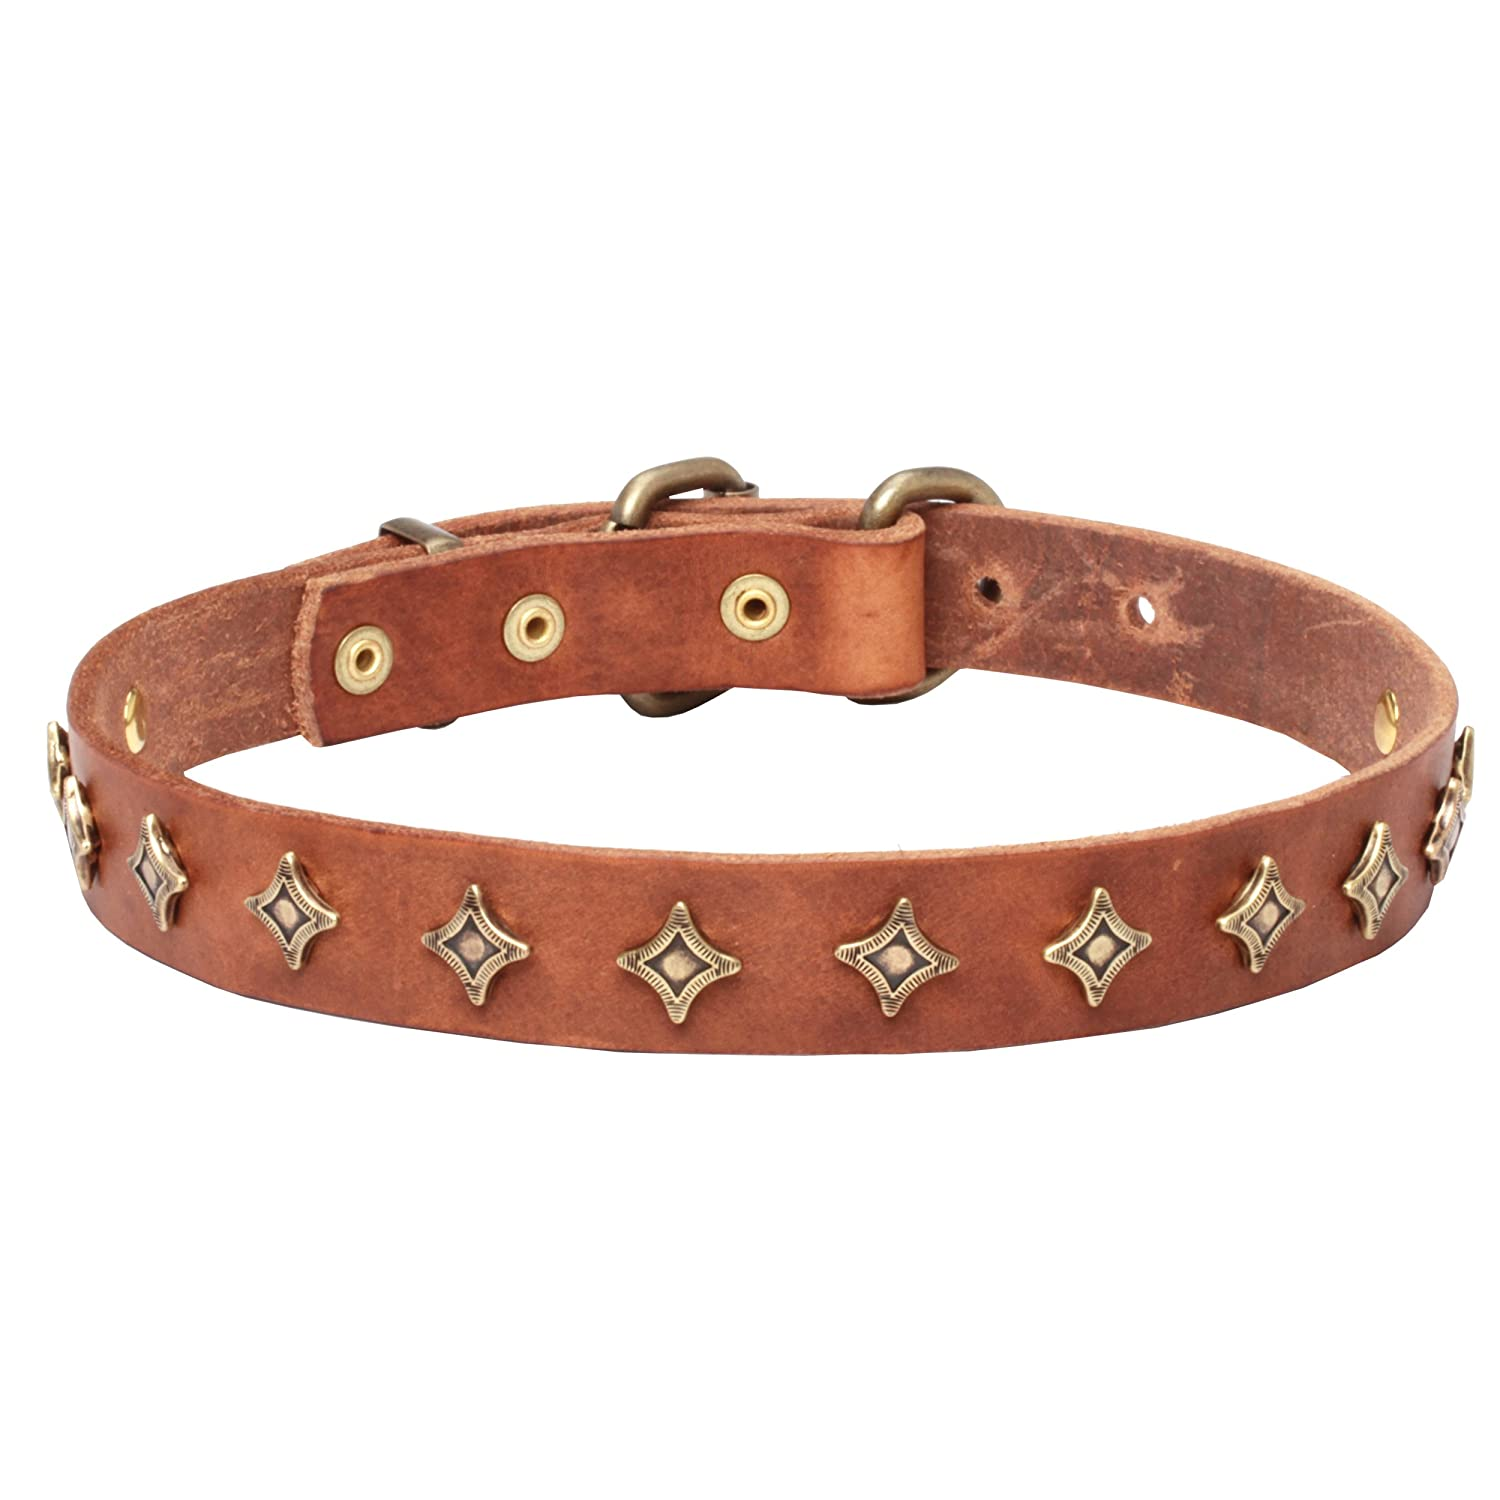 Tan fits for 19 inch dog's neck size Tan fits for 19 inch dog's neck size 19 inch Narrow Tan Leather Dog Collar  Yellow star  with Old-like Bronze Decoration 1 inch (25 mm) wide